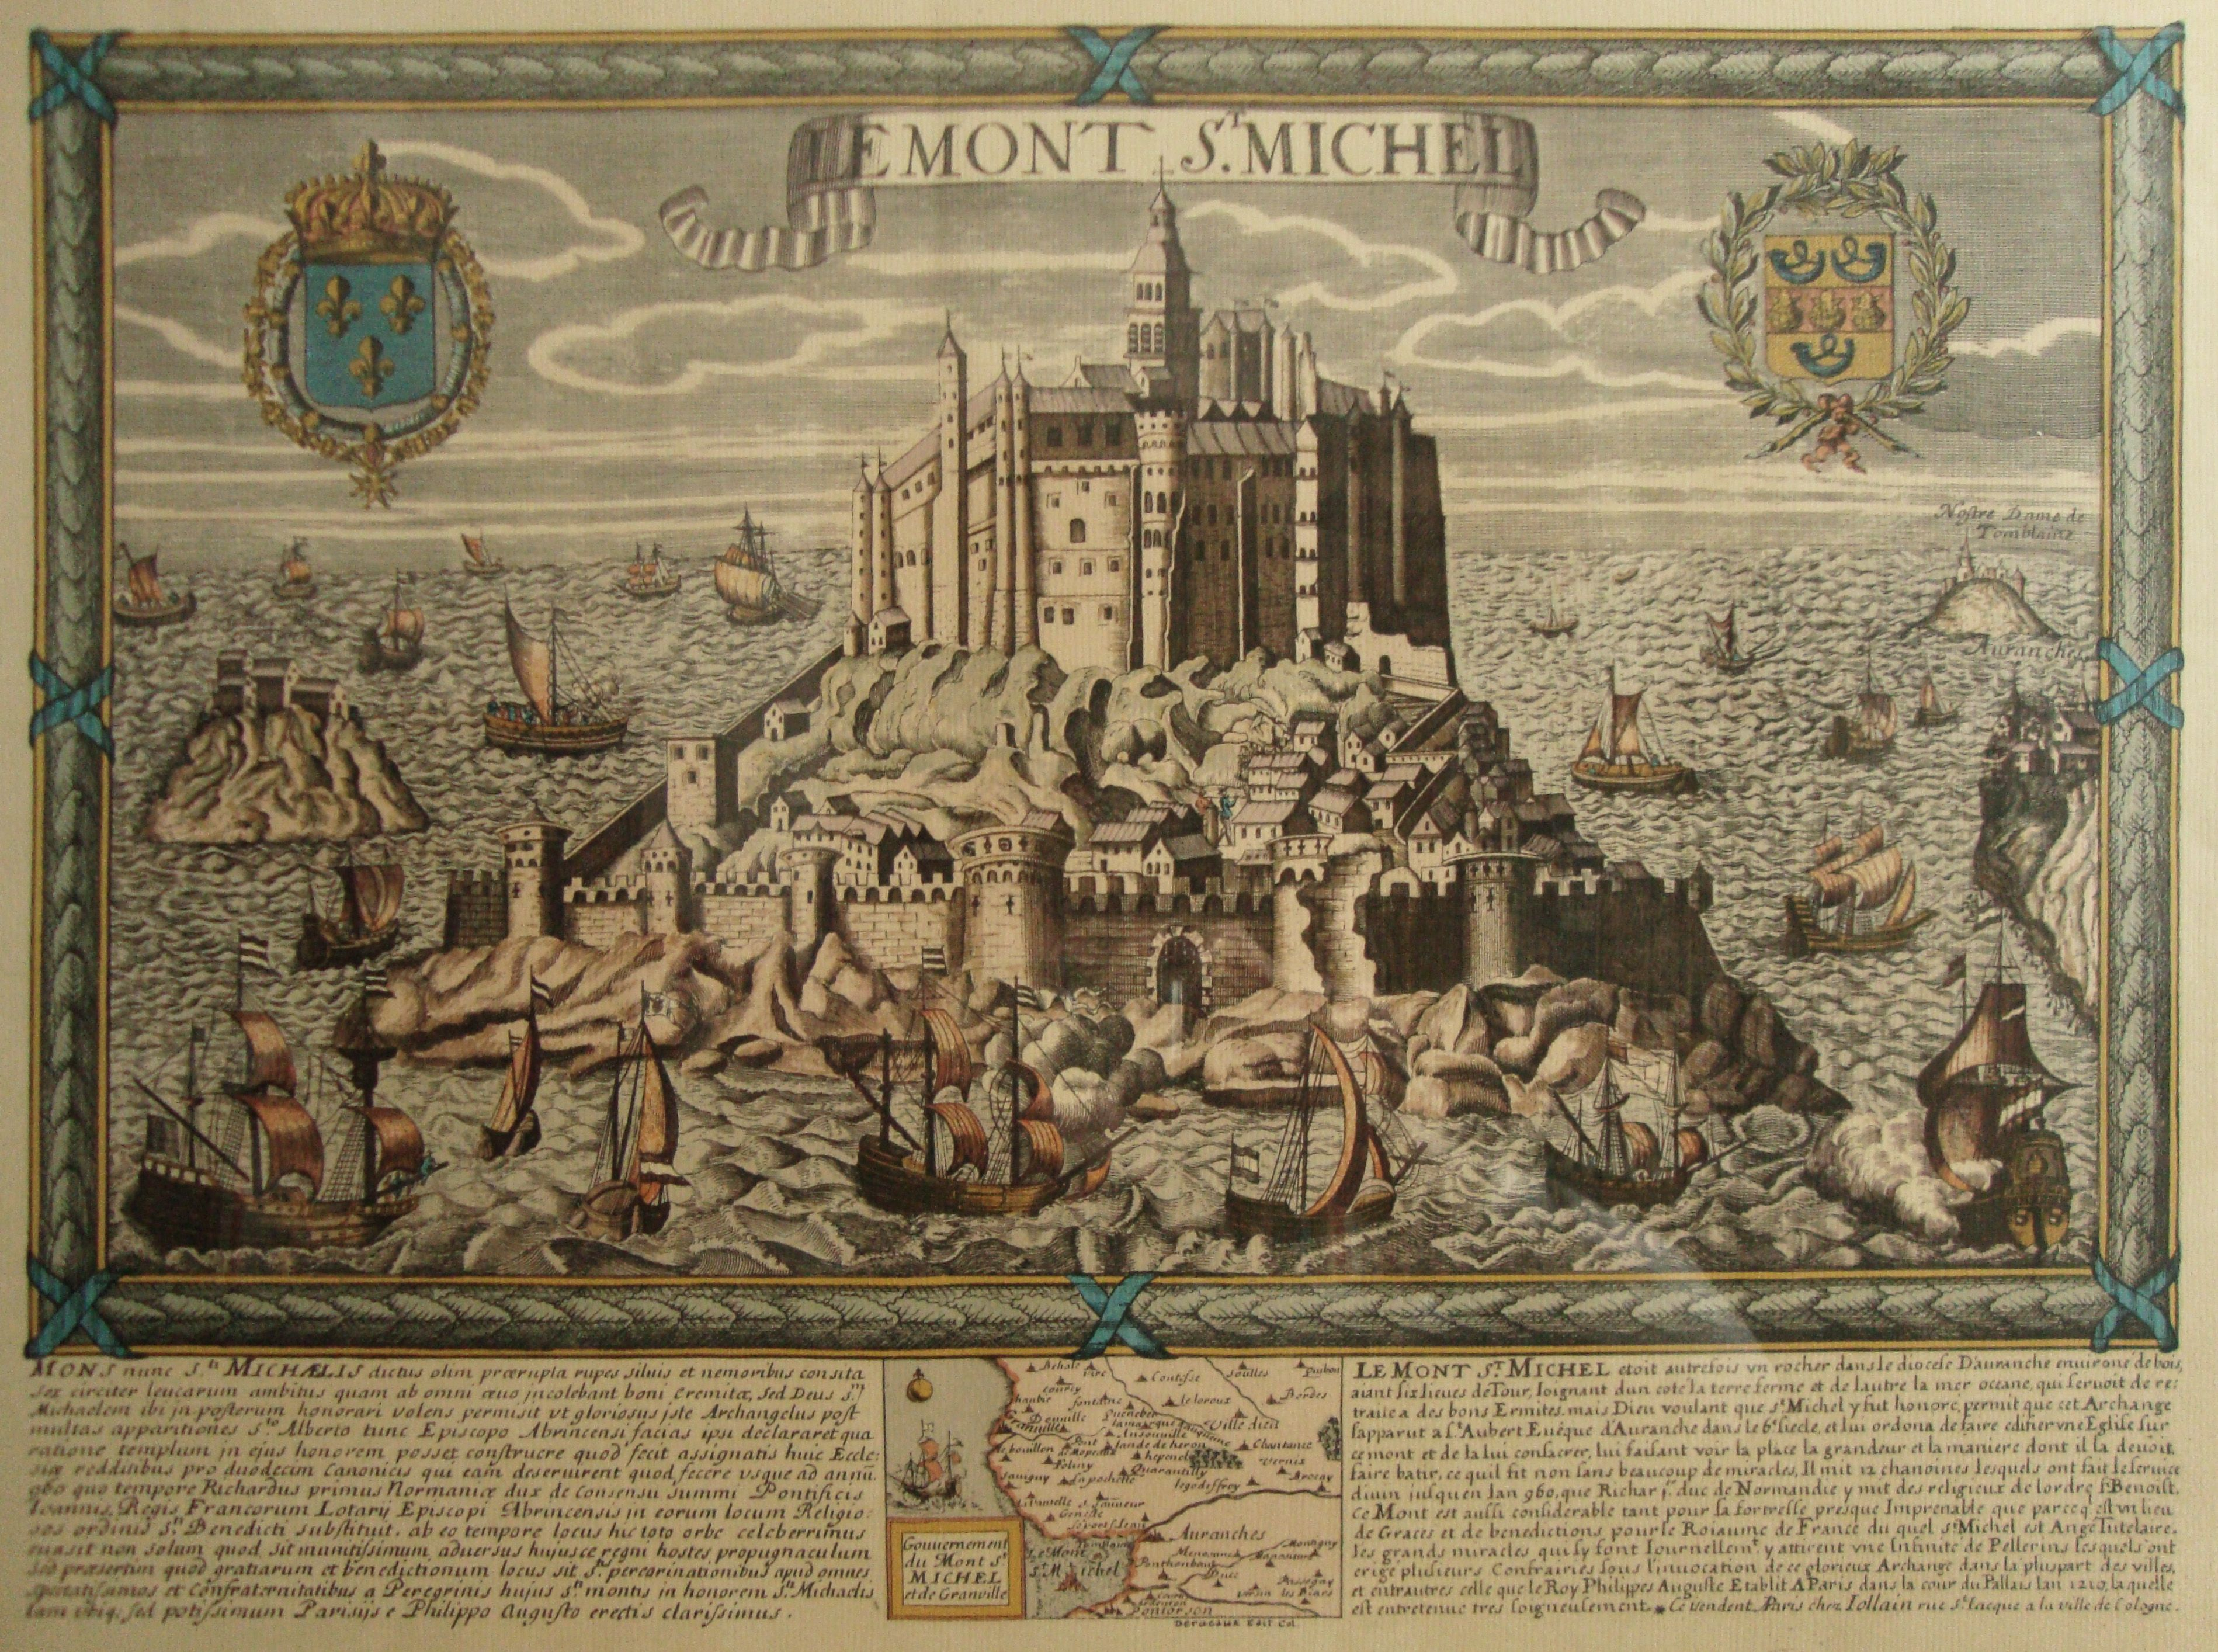 Louisiana Map Alexandria%0A copy free image of mont st michel  old illustration with a maplike feel